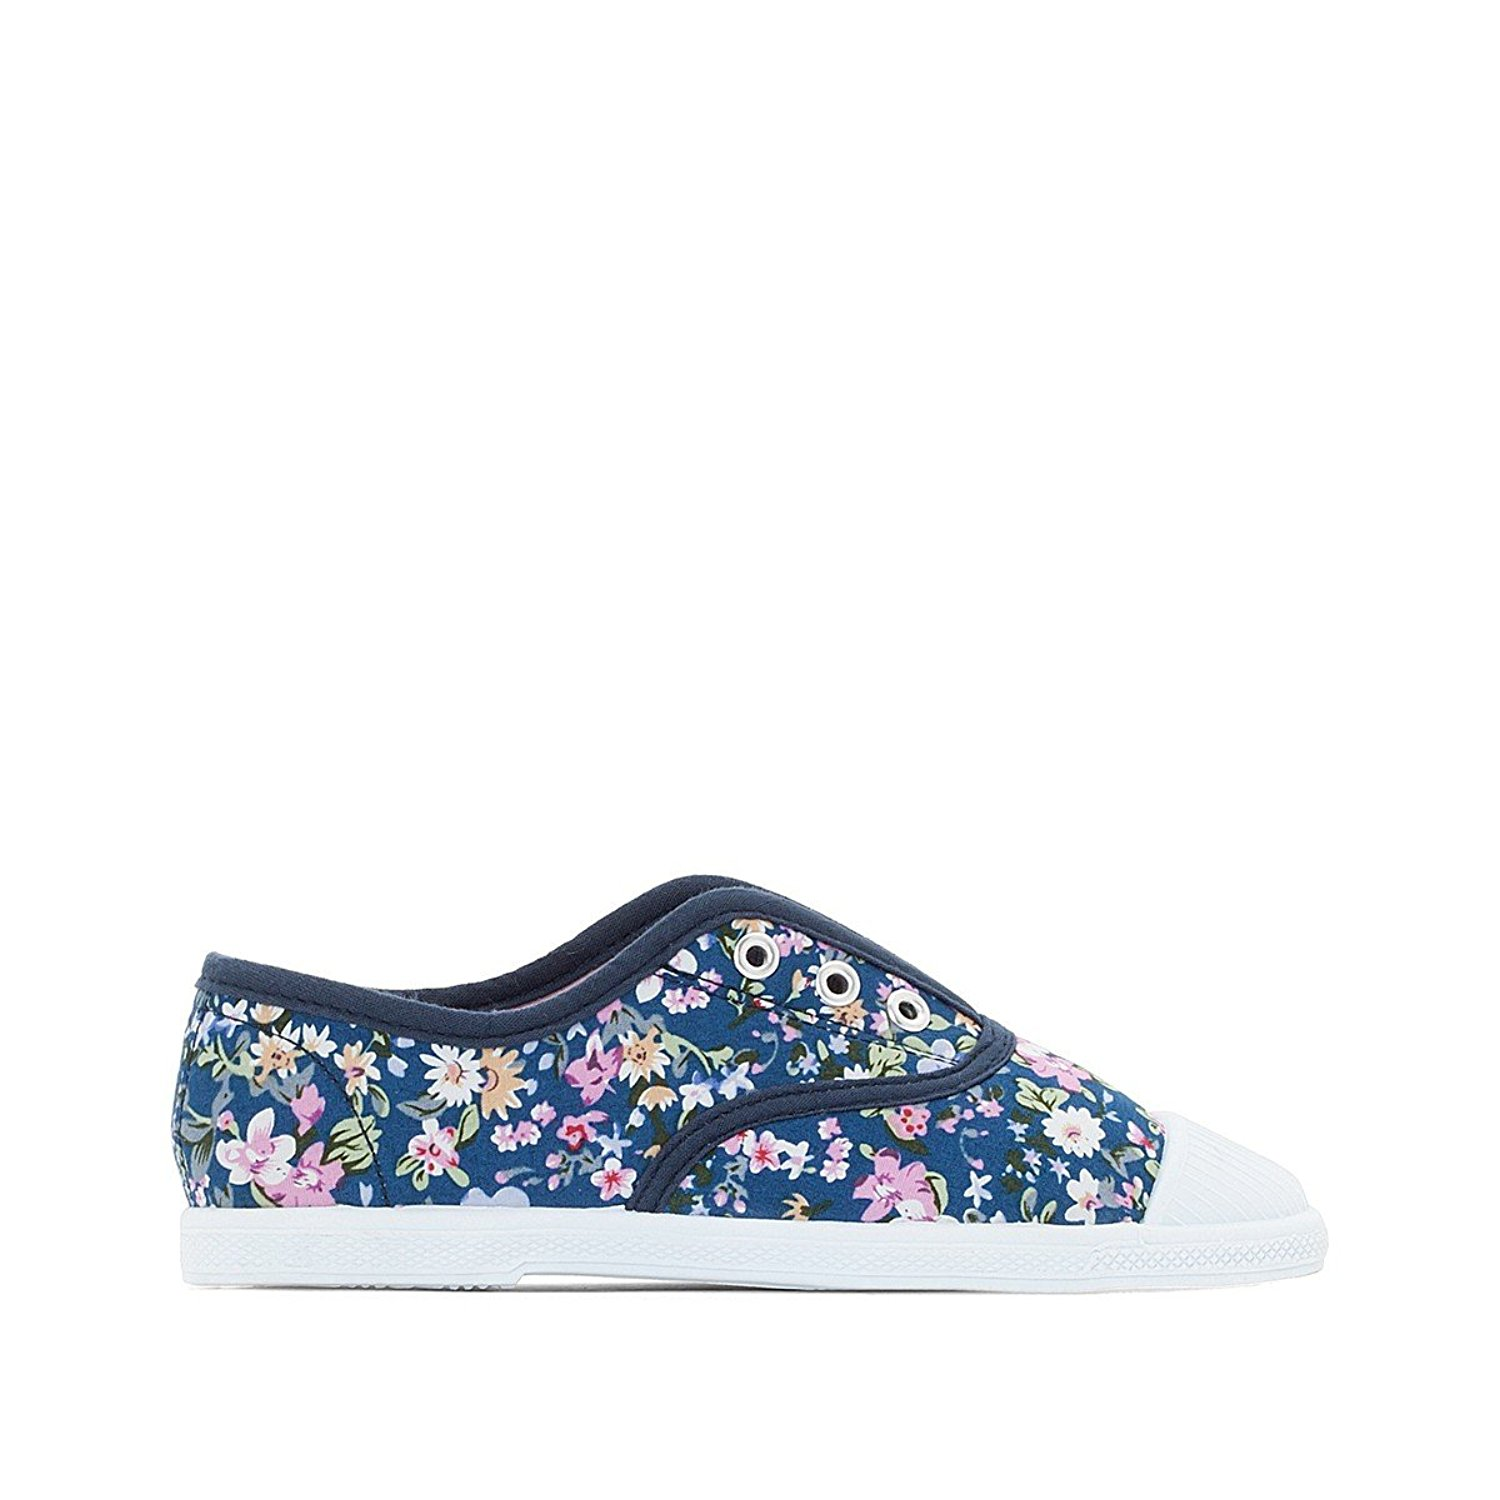 be410f8b05 Cheap Floral Trainers, find Floral Trainers deals on line at Alibaba.com